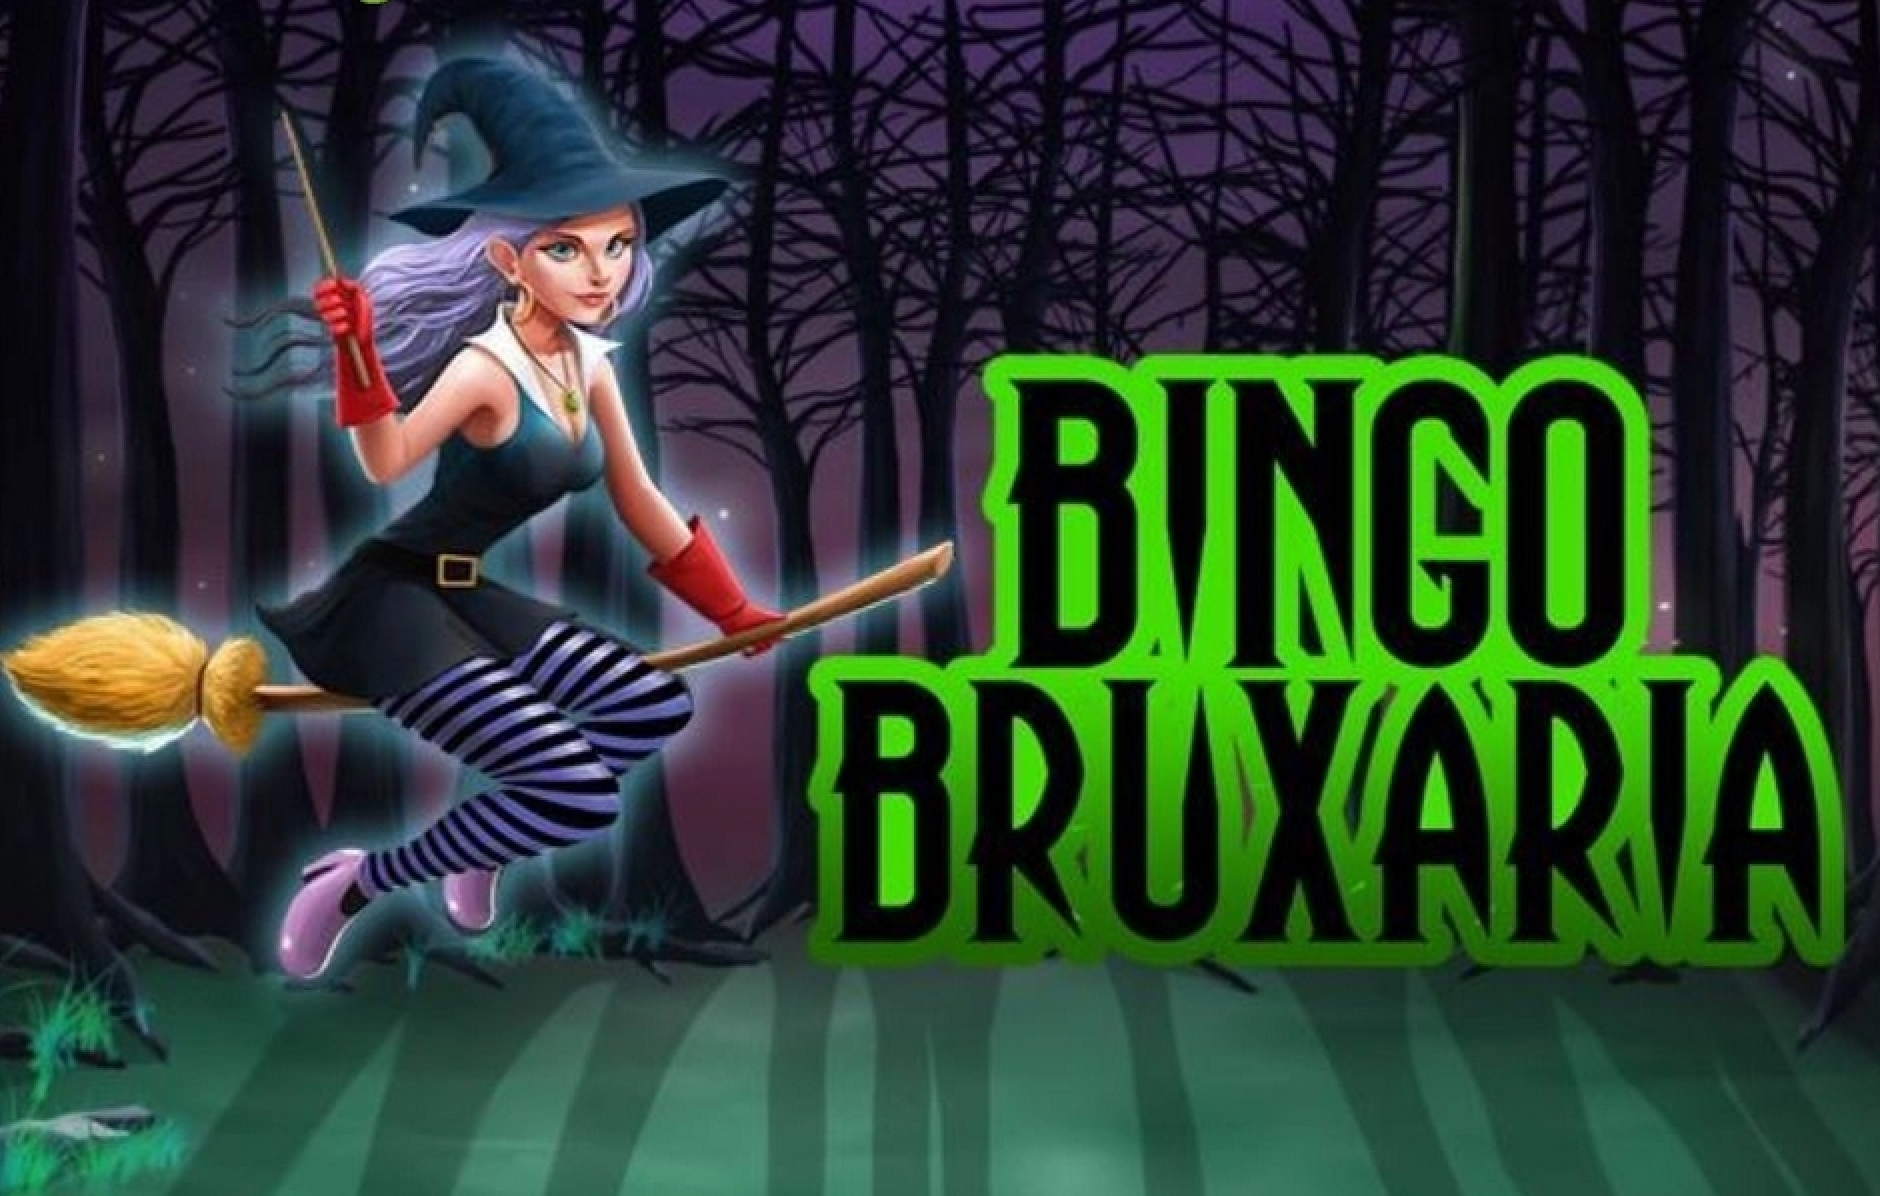 The Bingo Bruxaria Online Slot Demo Game by Caleta Gaming